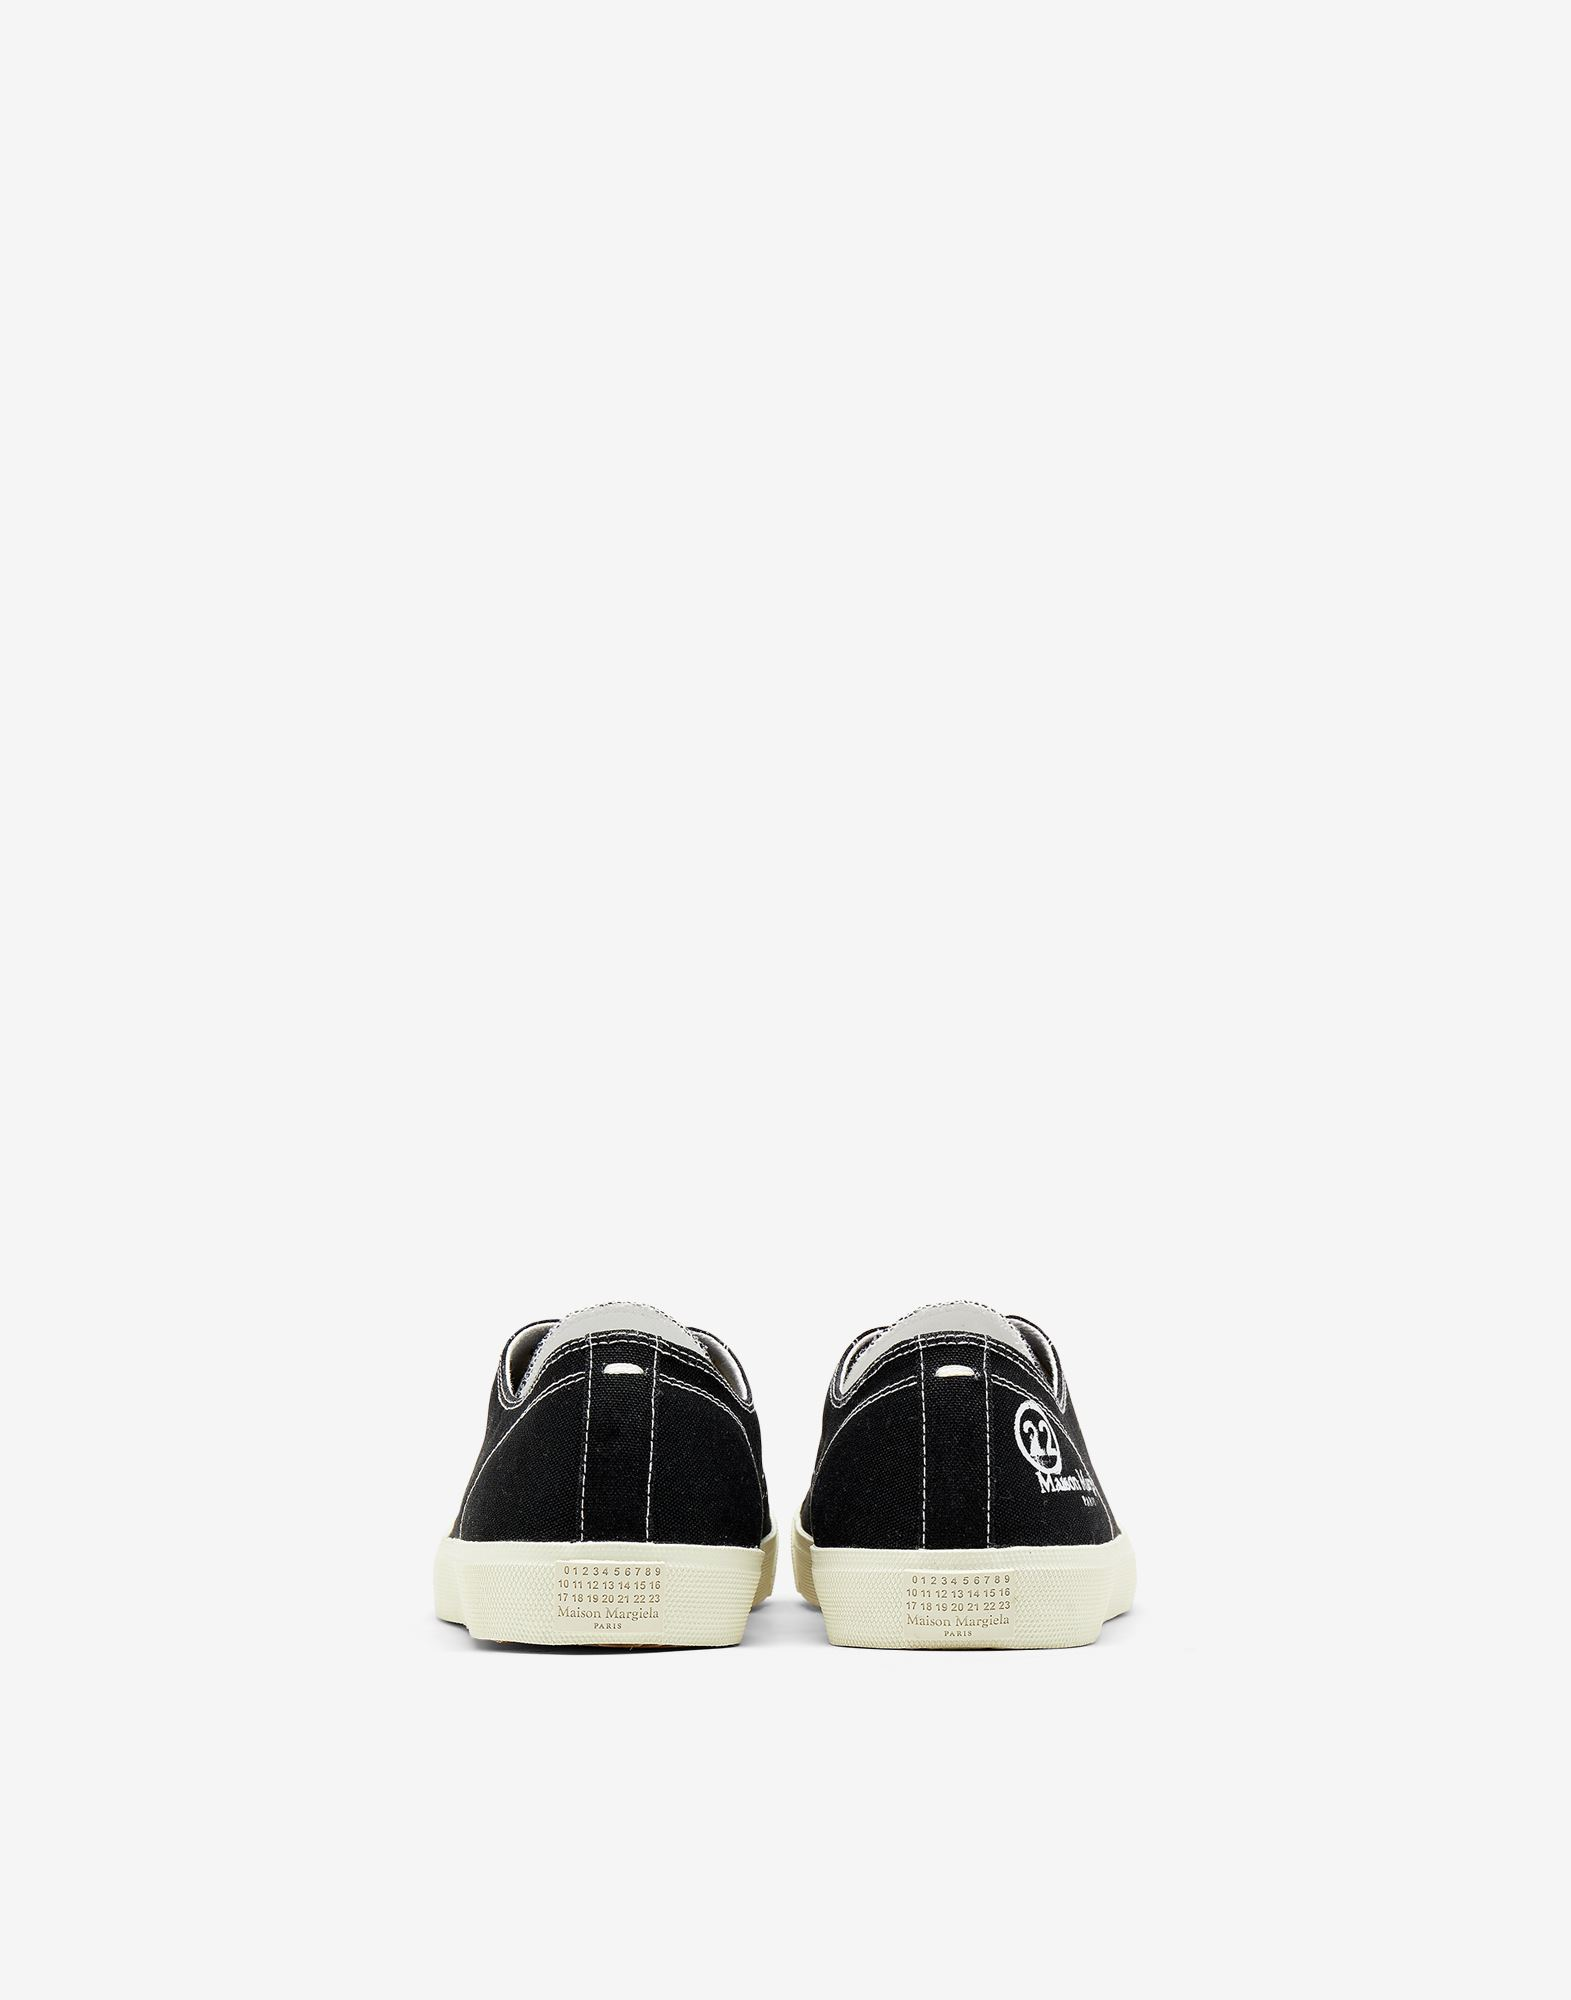 MAISON MARGIELA Tabi low top sneakers Sneakers Tabi Man d